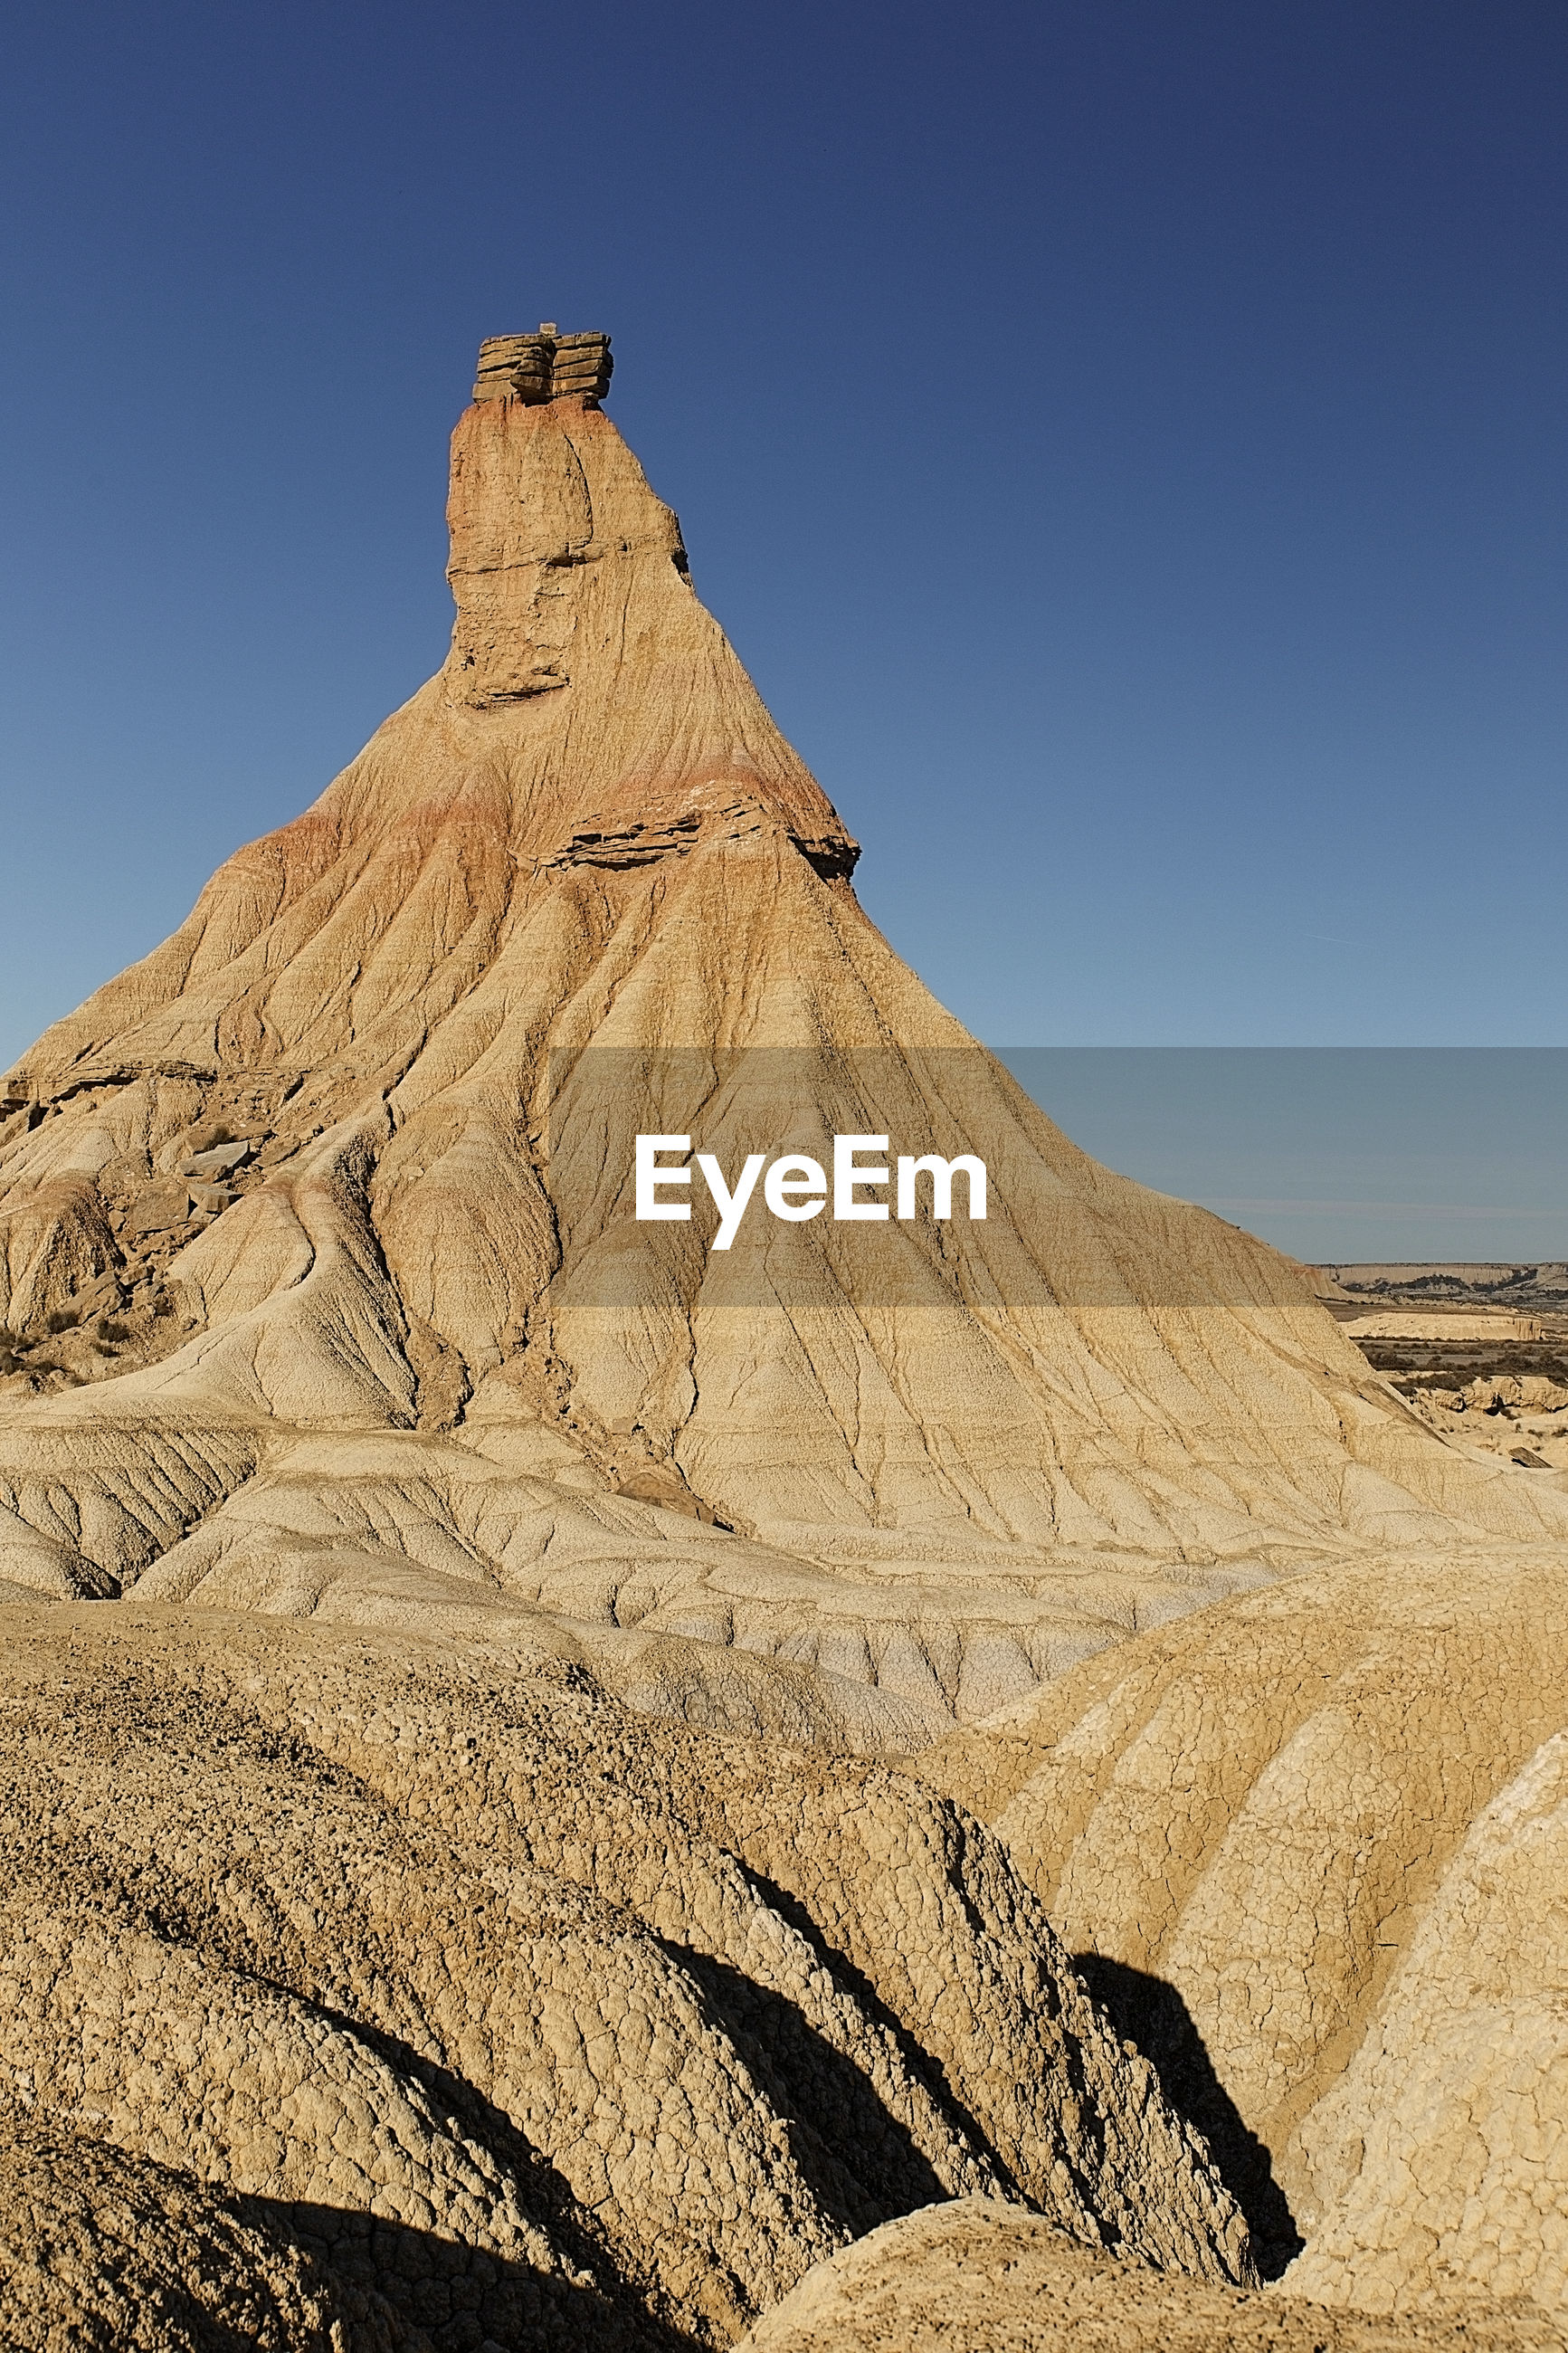 ROCK FORMATIONS ON DESERT AGAINST CLEAR BLUE SKY